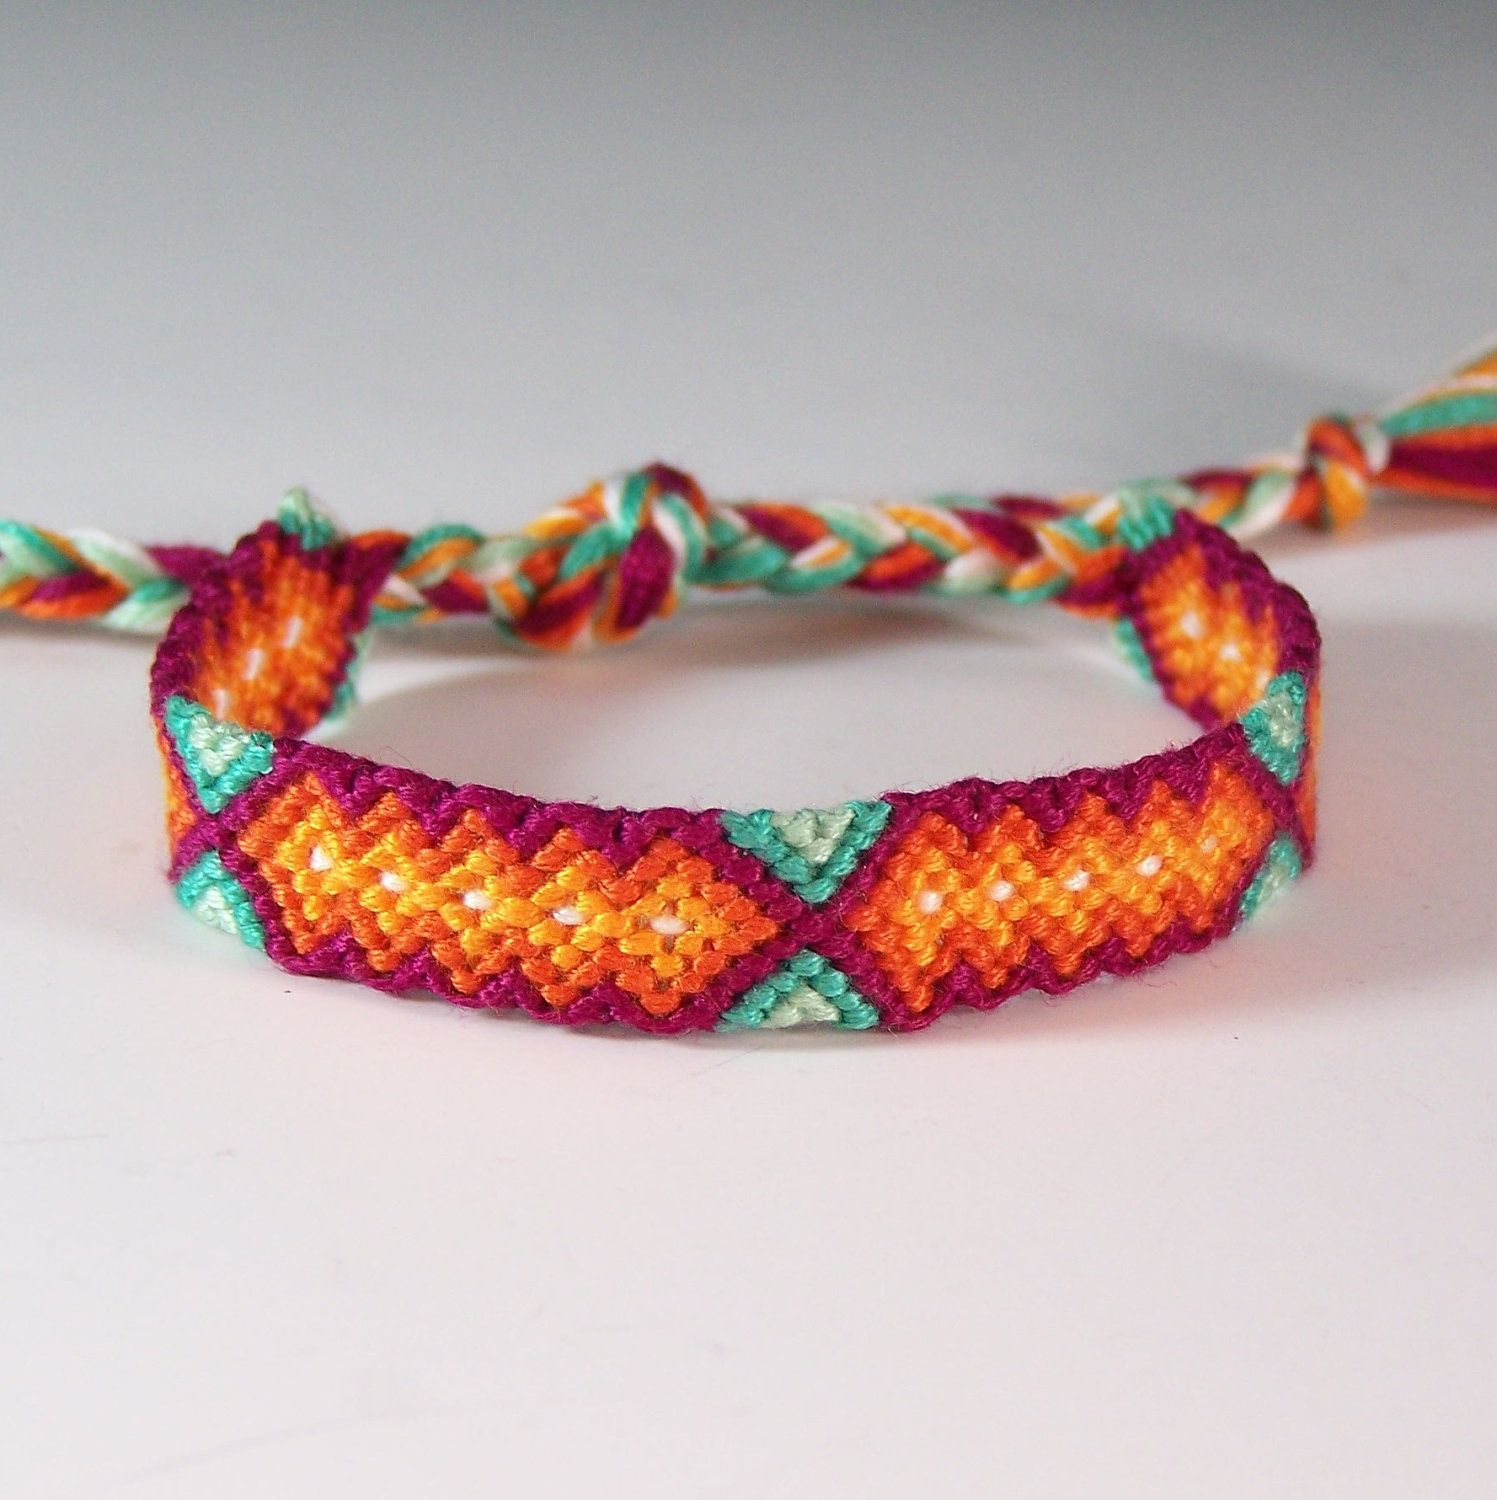 bracelet knots picture easy steps lots thread kitchen tutorial of a embroidery friendship red in the